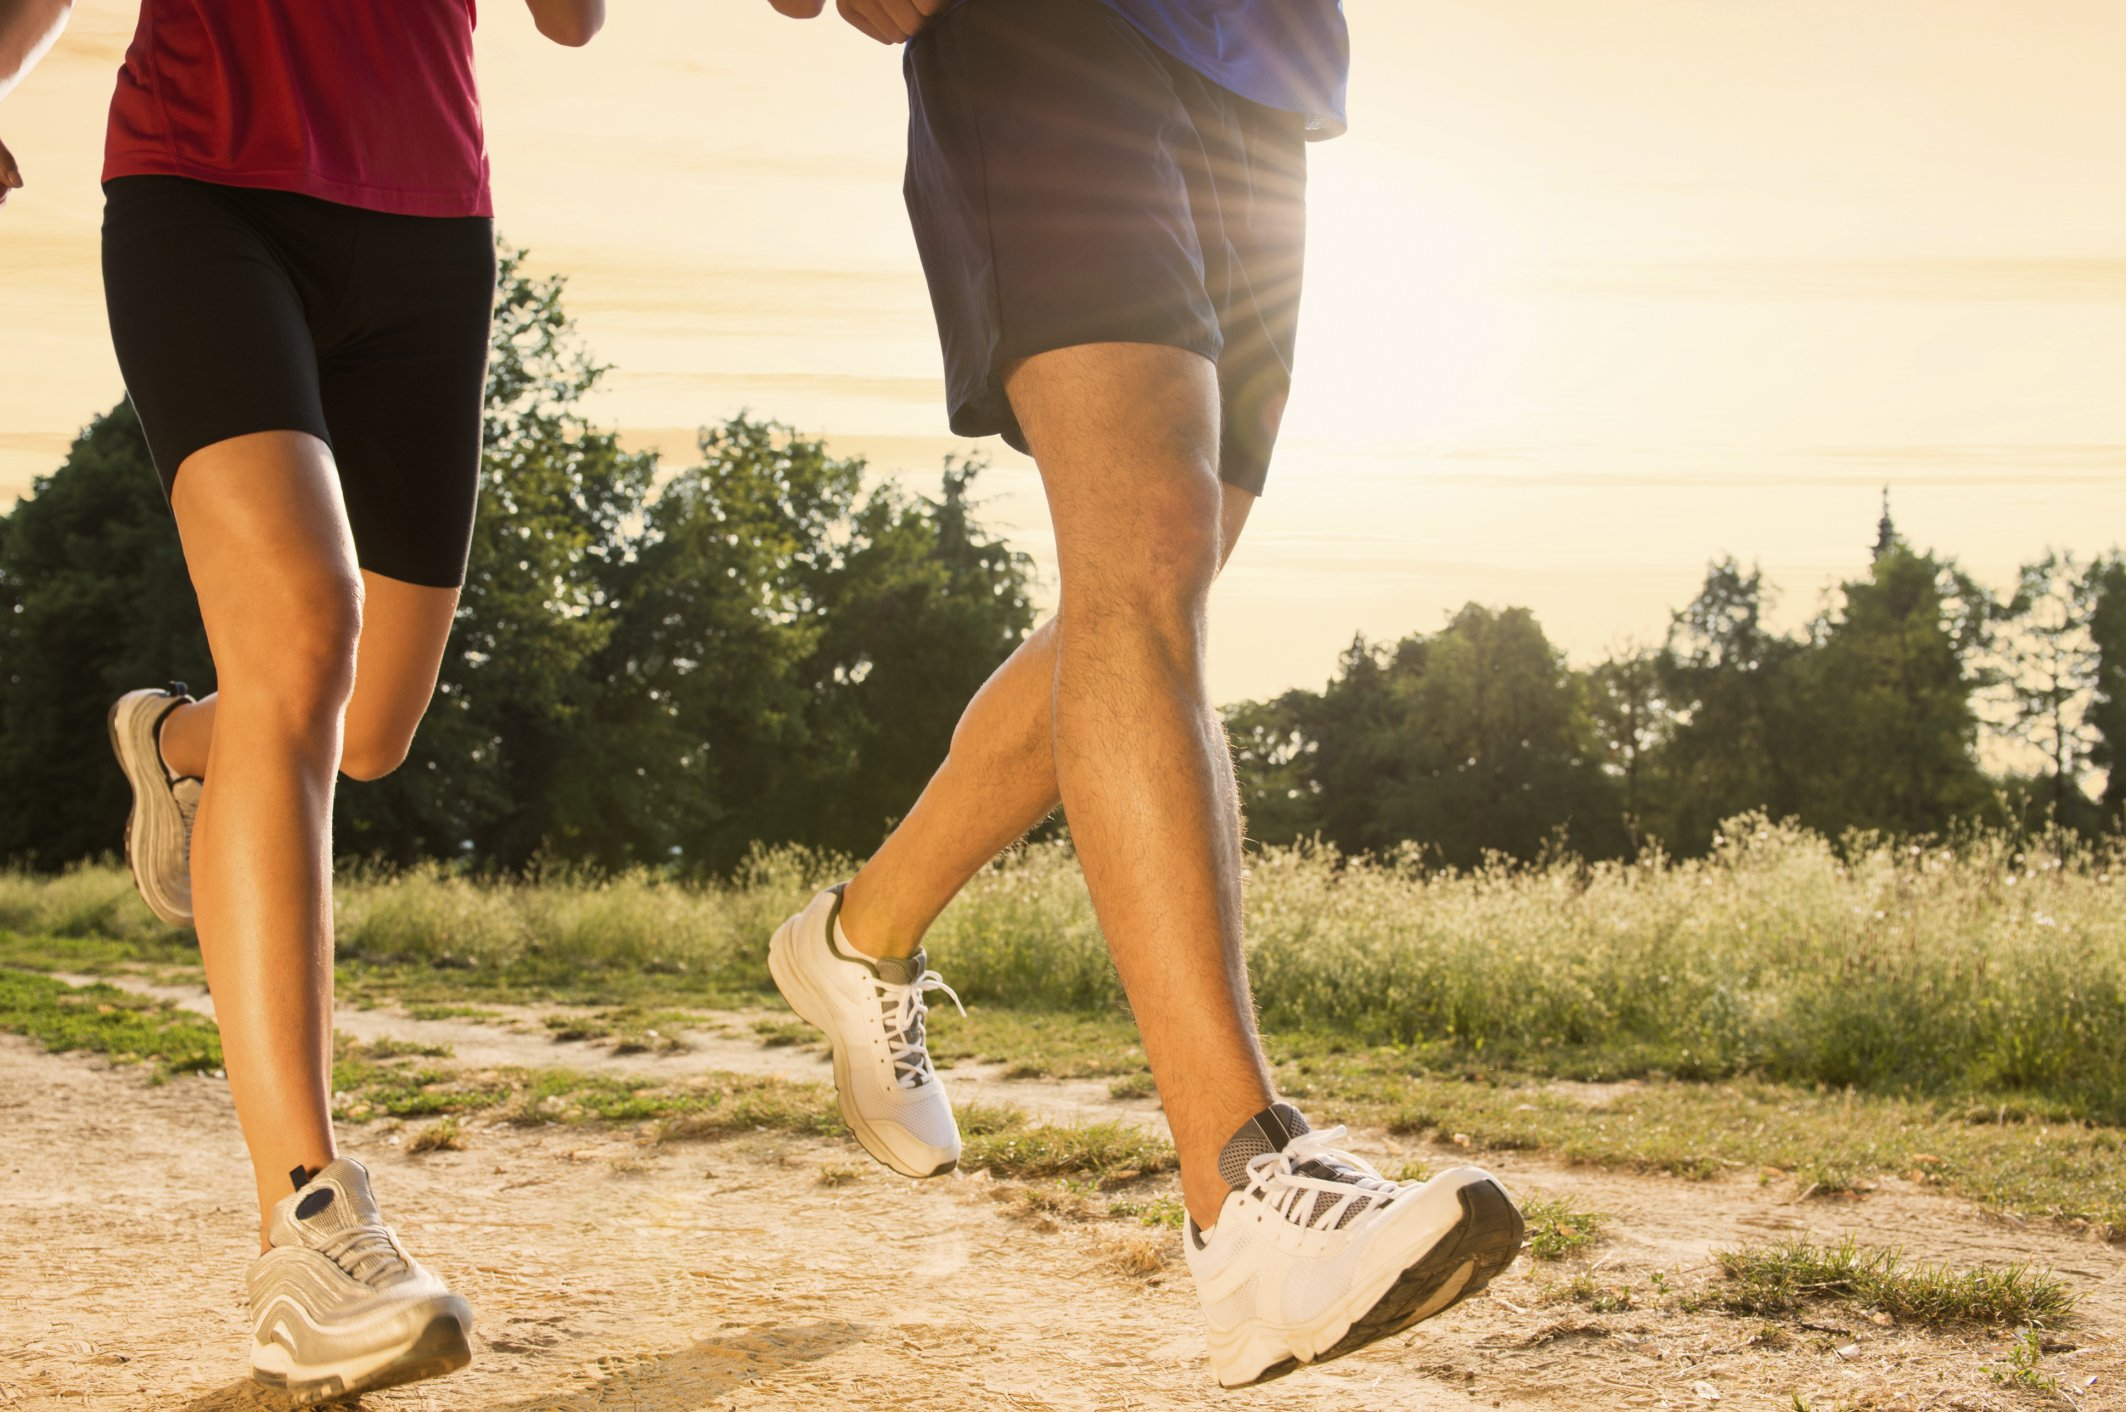 Two runners move down a trail.